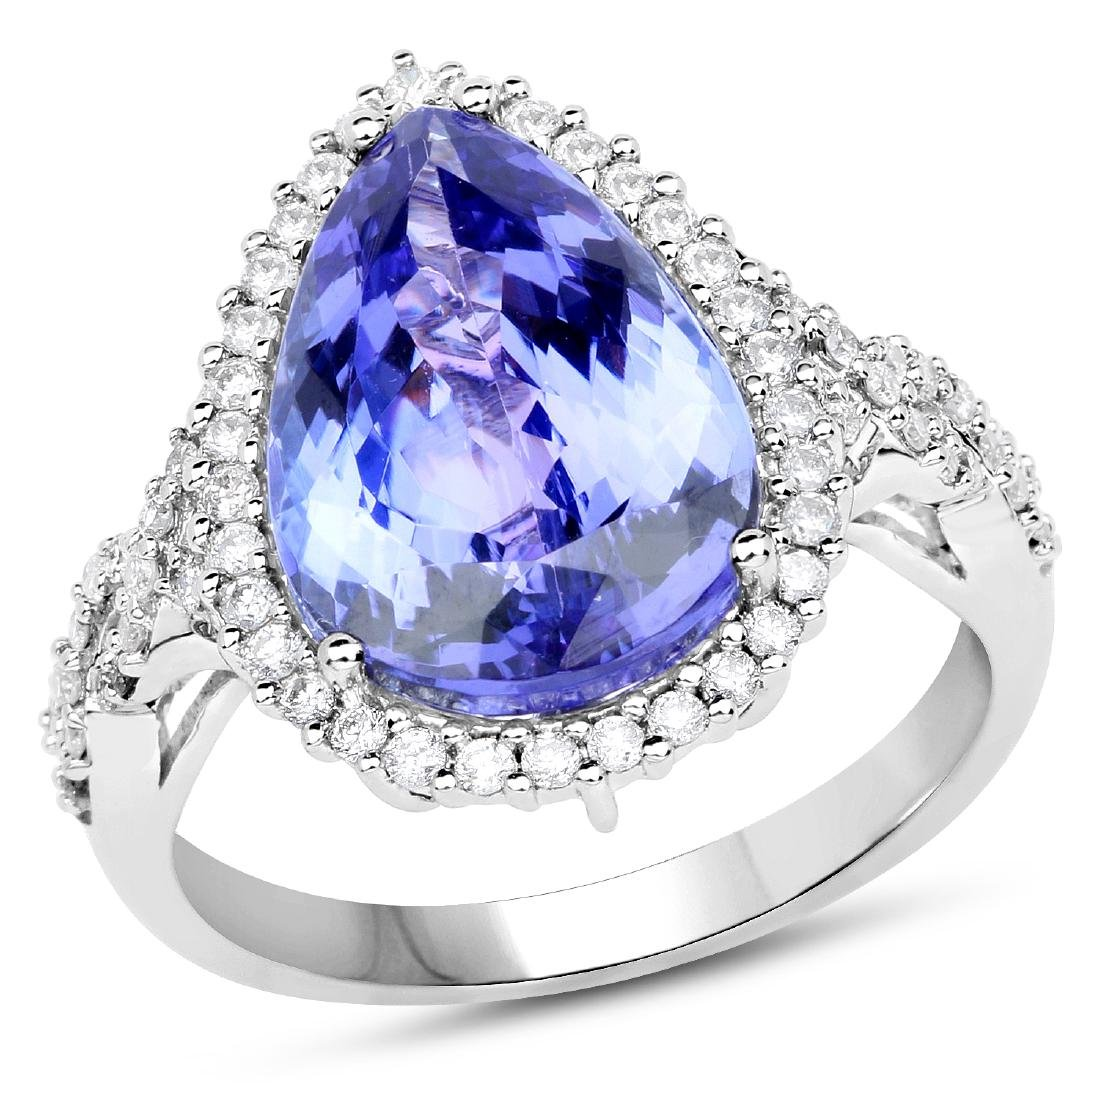 *14 kt. White Gold, 5.83CT Pear Cut Tanzanite And